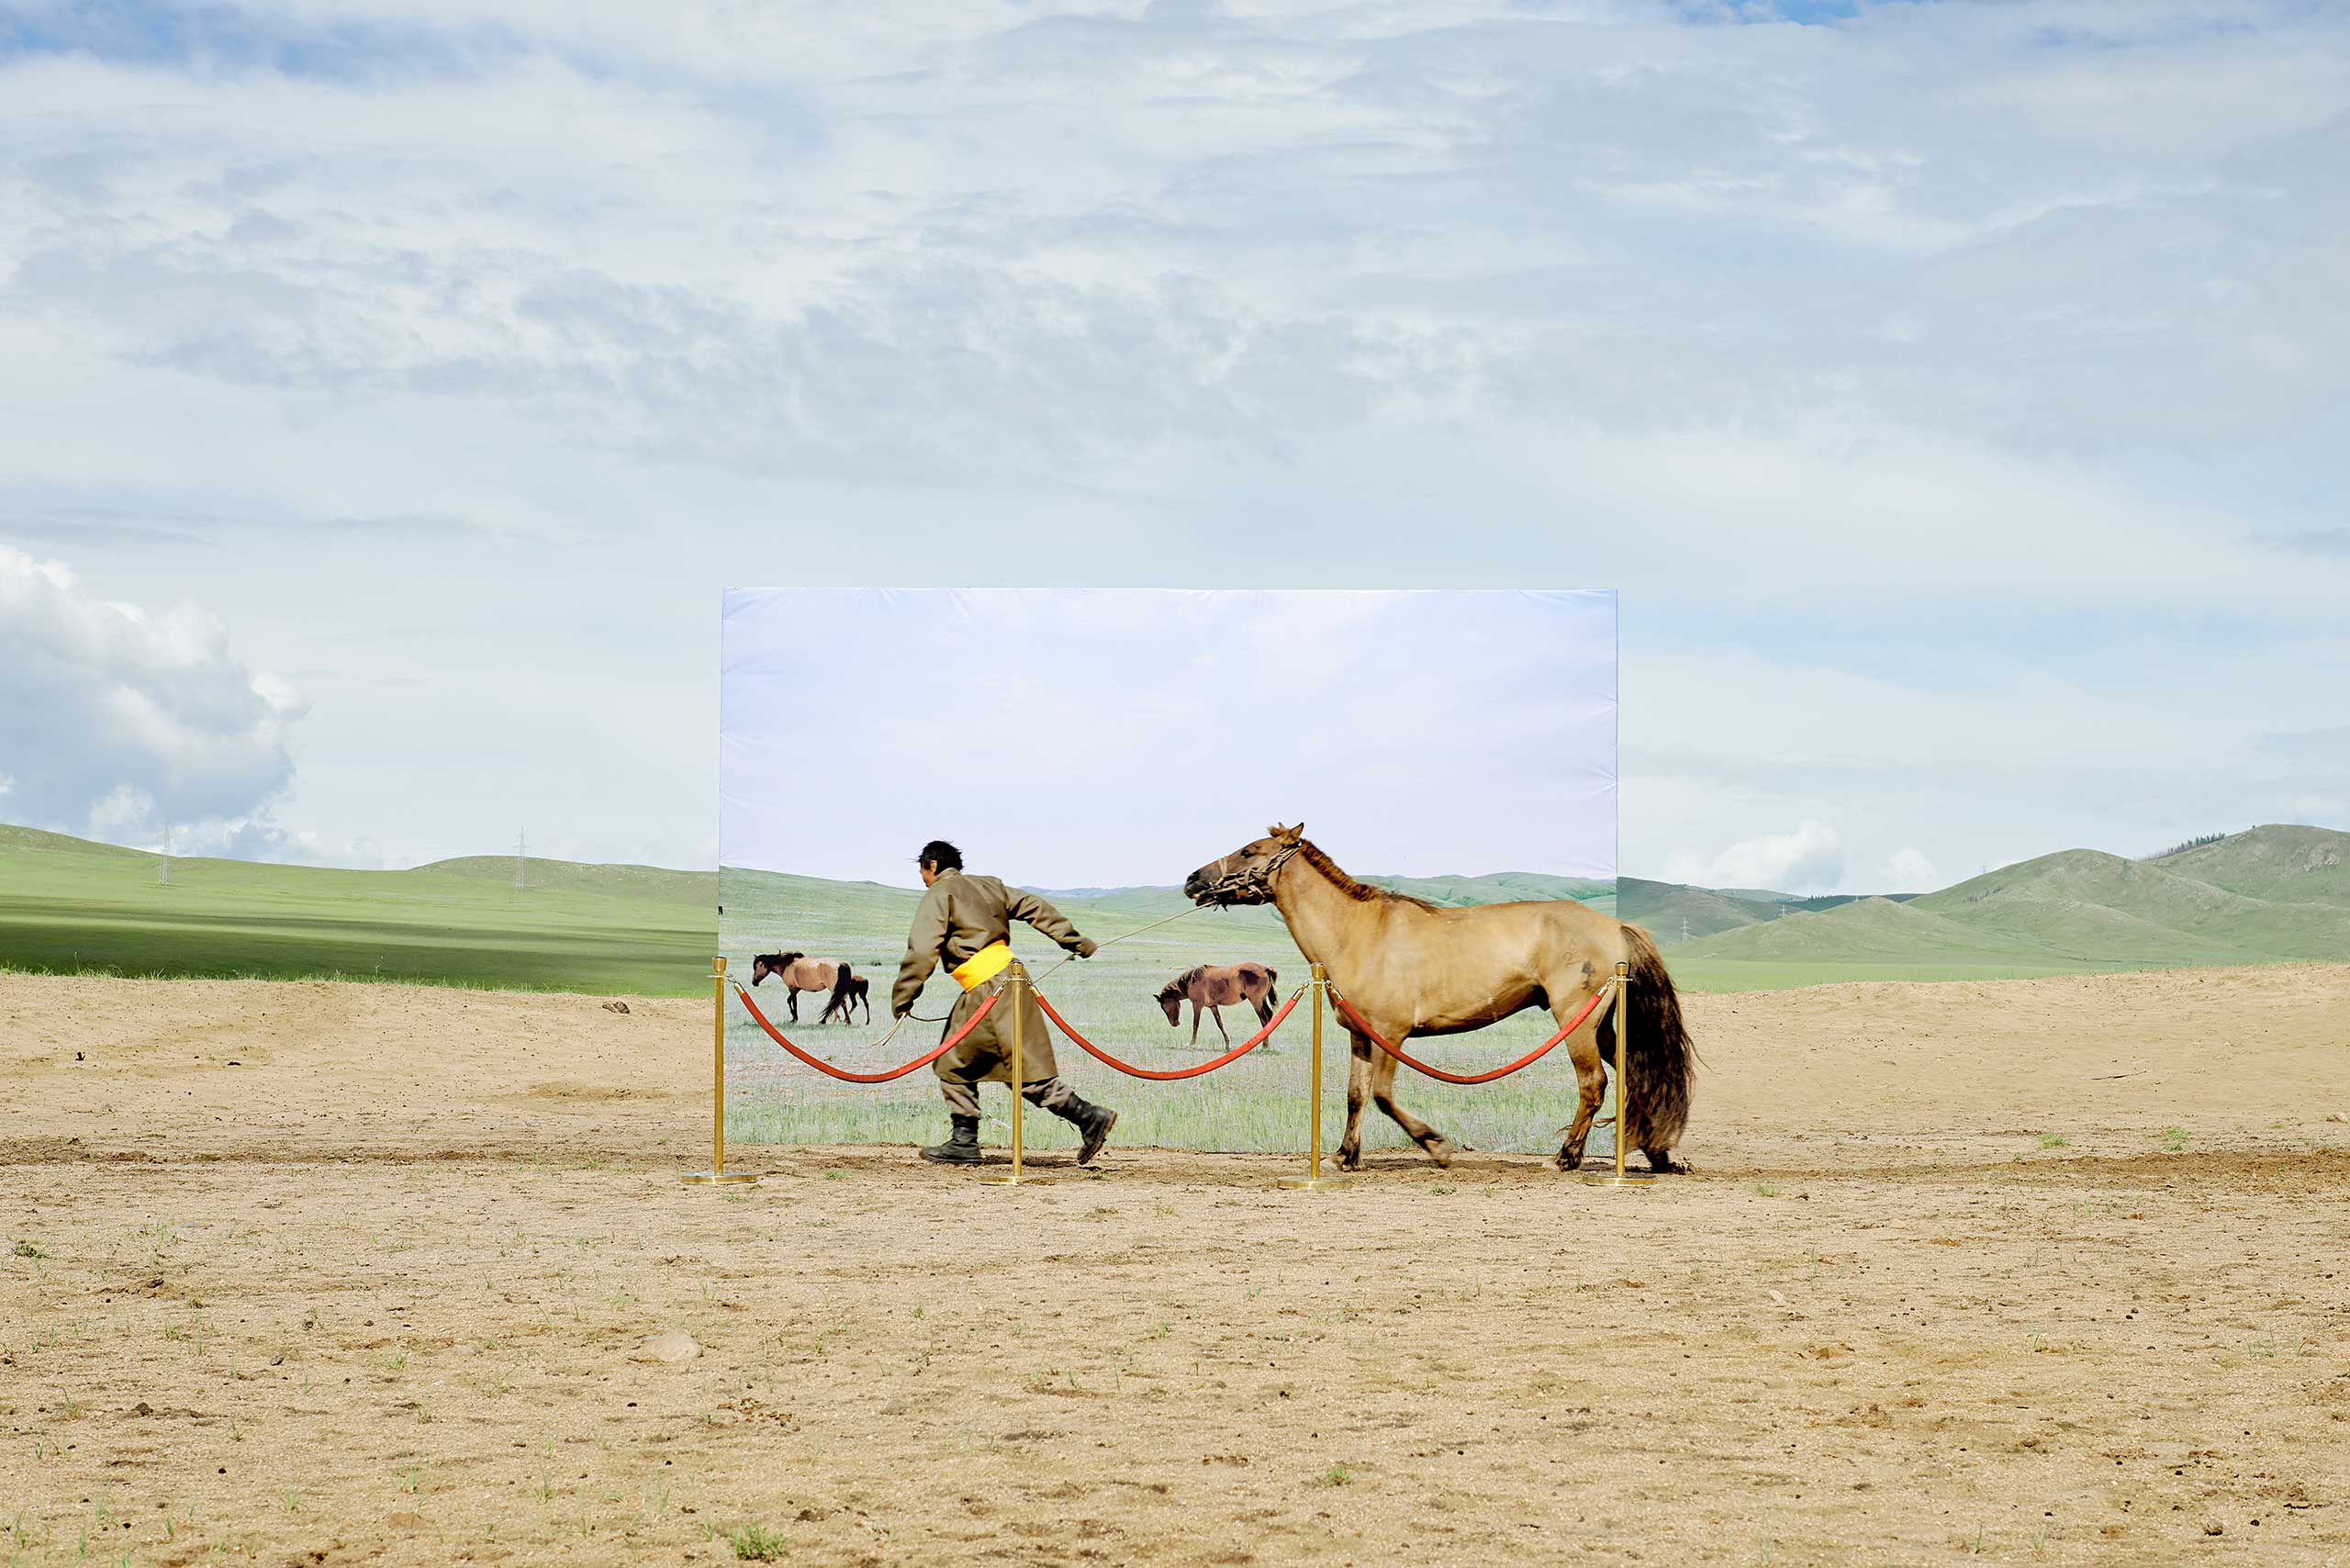 Nominated in the Conceptual Category. Daesung Lee's work on the traditional Mongolian nomadic lifestyle.